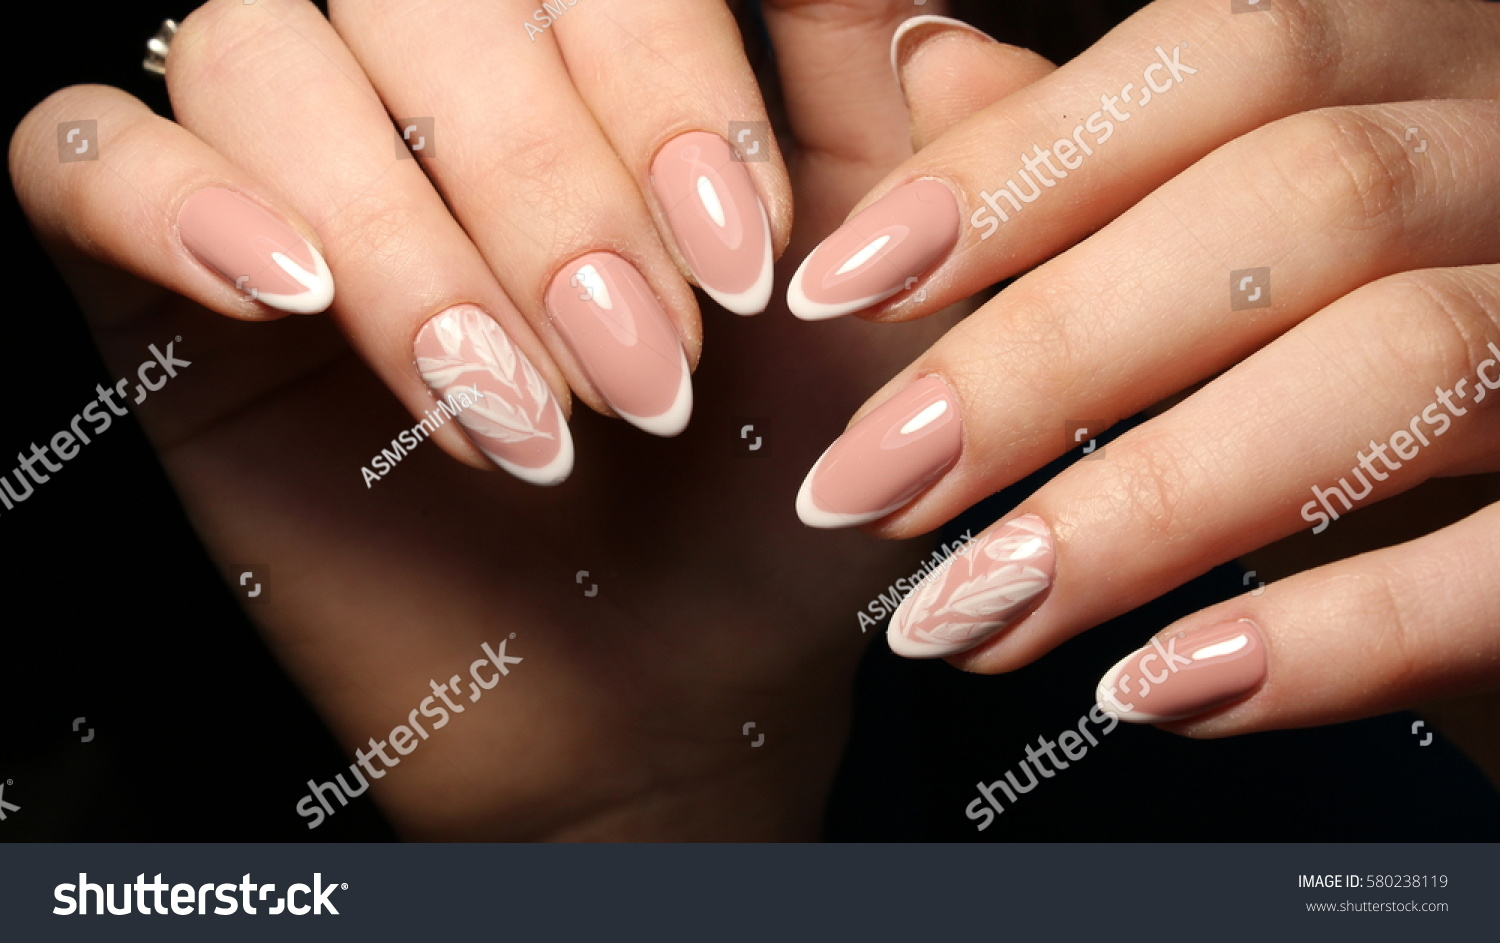 Nail Design French Manicure White Patterned Stock Photo (Safe to Use ...